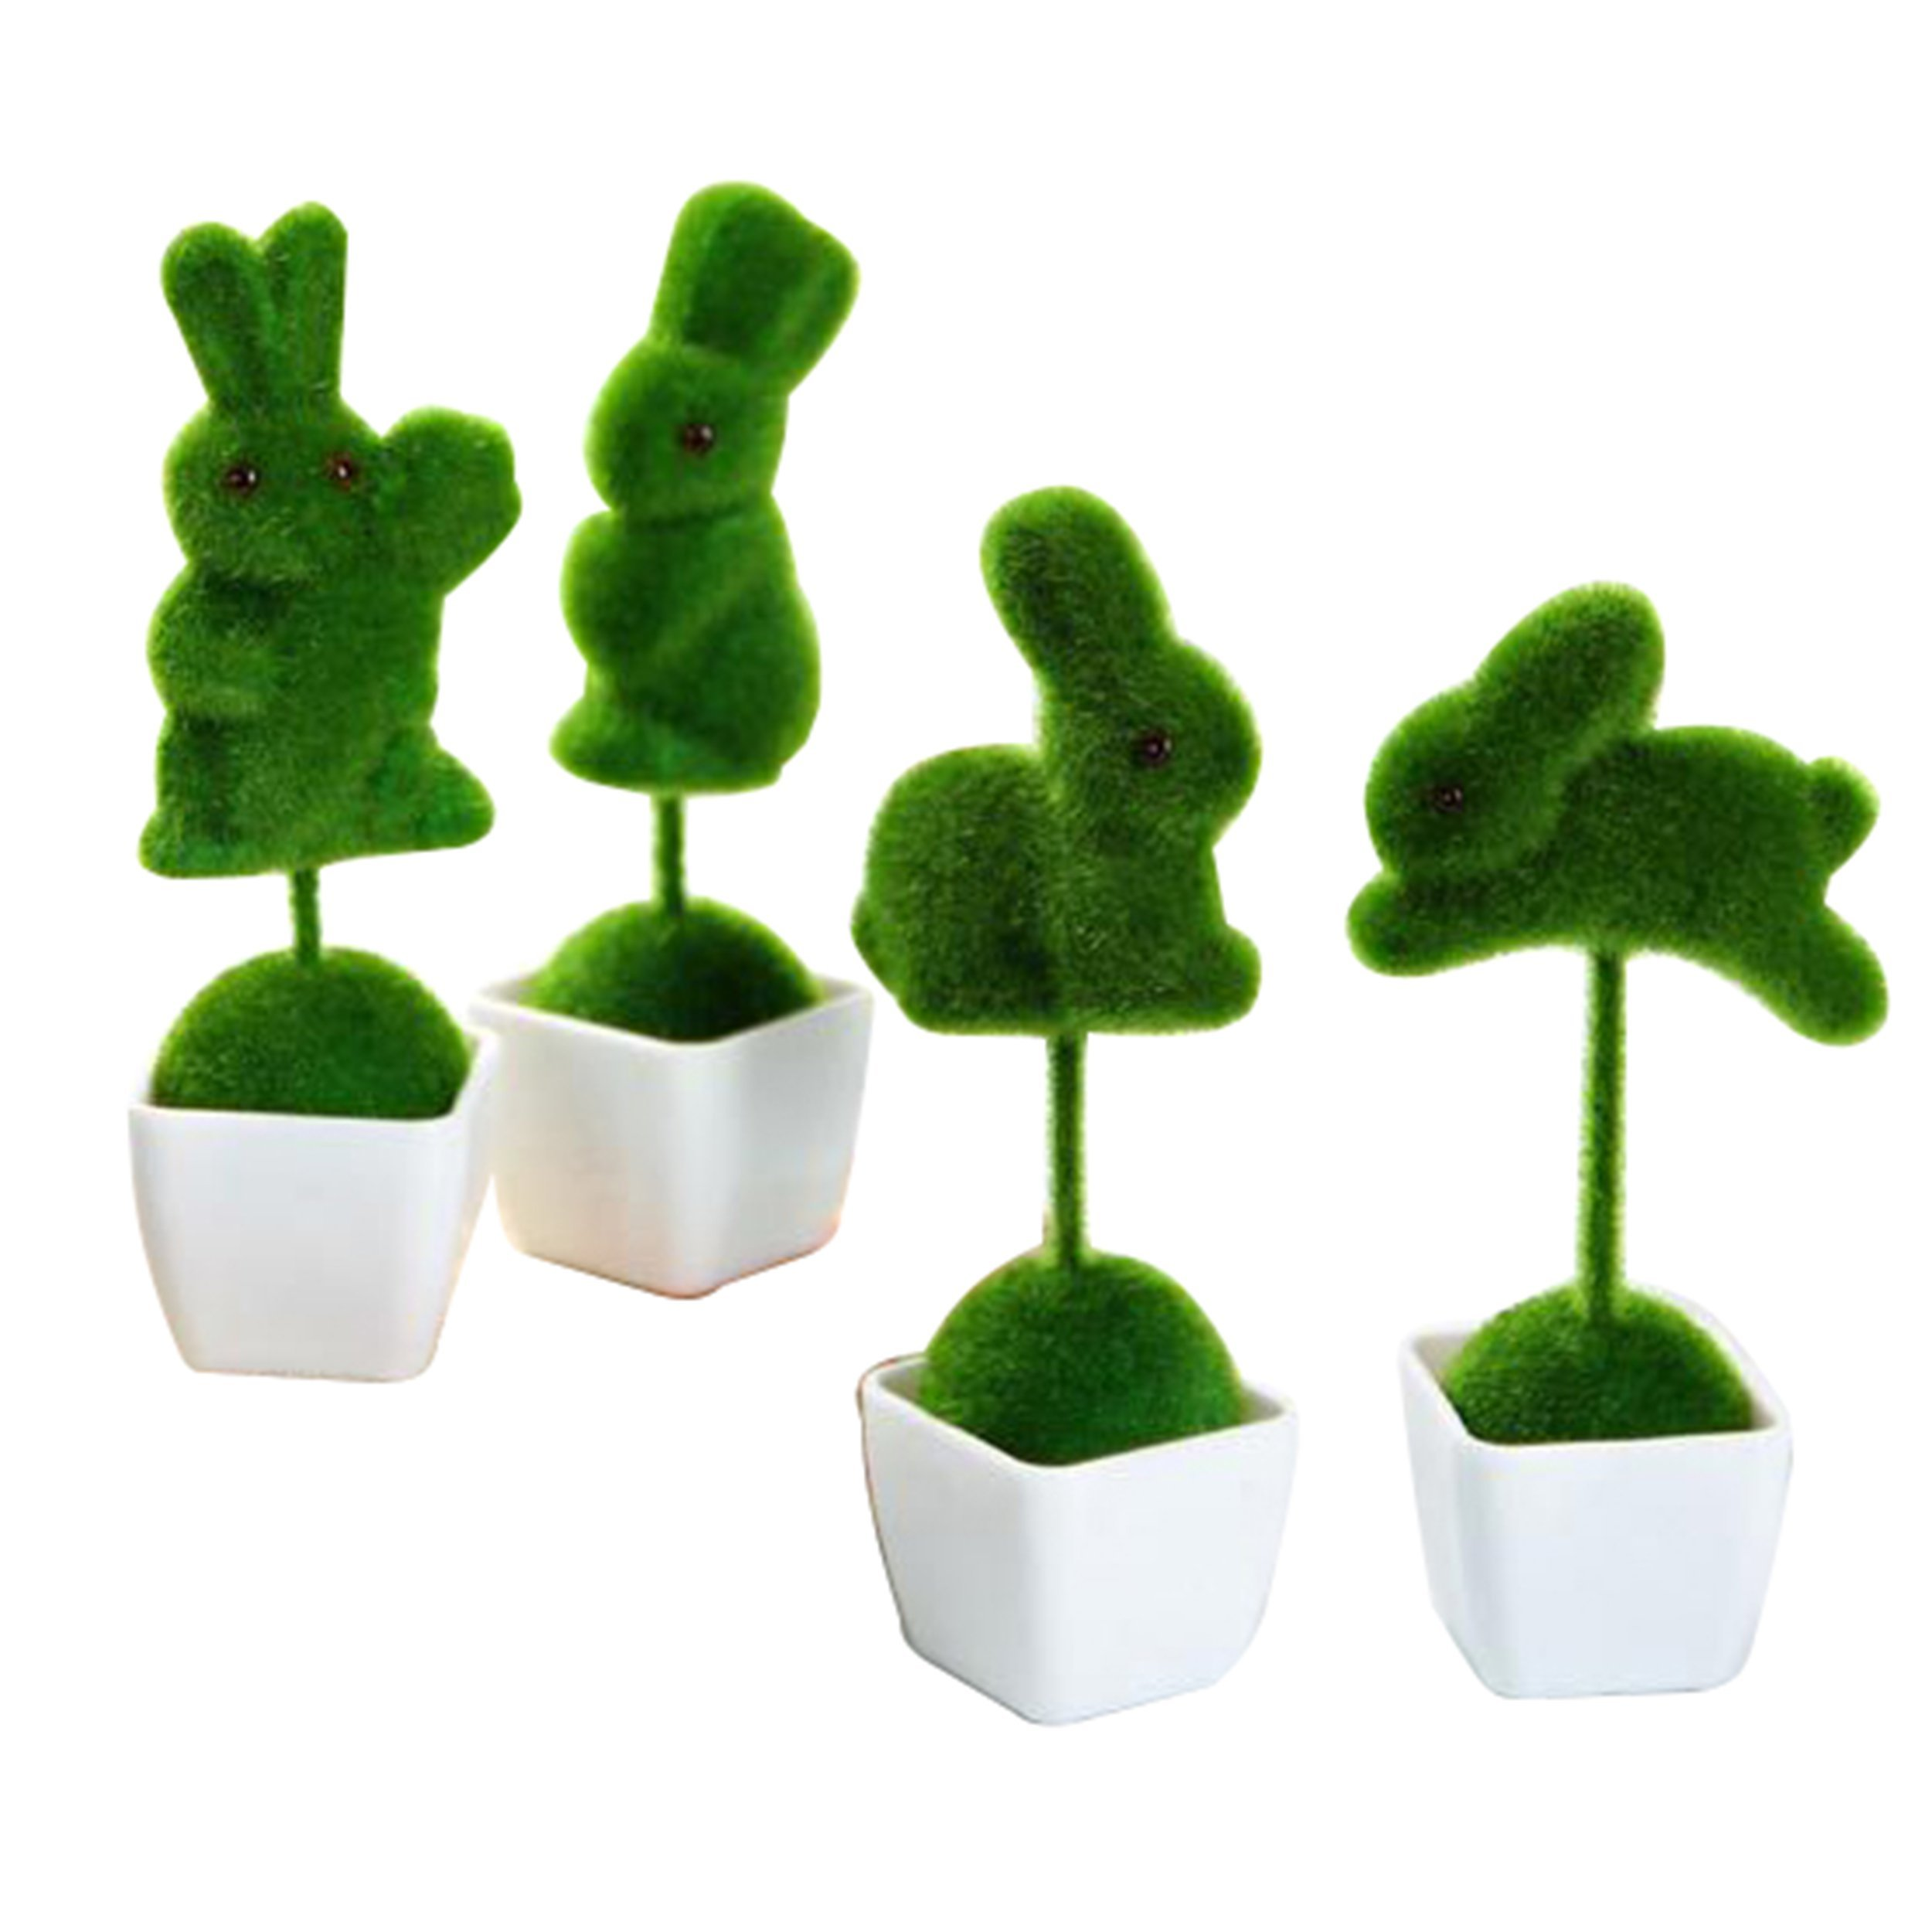 XuanMax Artificial Turf Ornaments Simulation Artificial Plants in Pot Faux Potted Bonsai Fake Green Grass Greenery Decoration for Indoor Outdoor Balcony Decor (Animal)